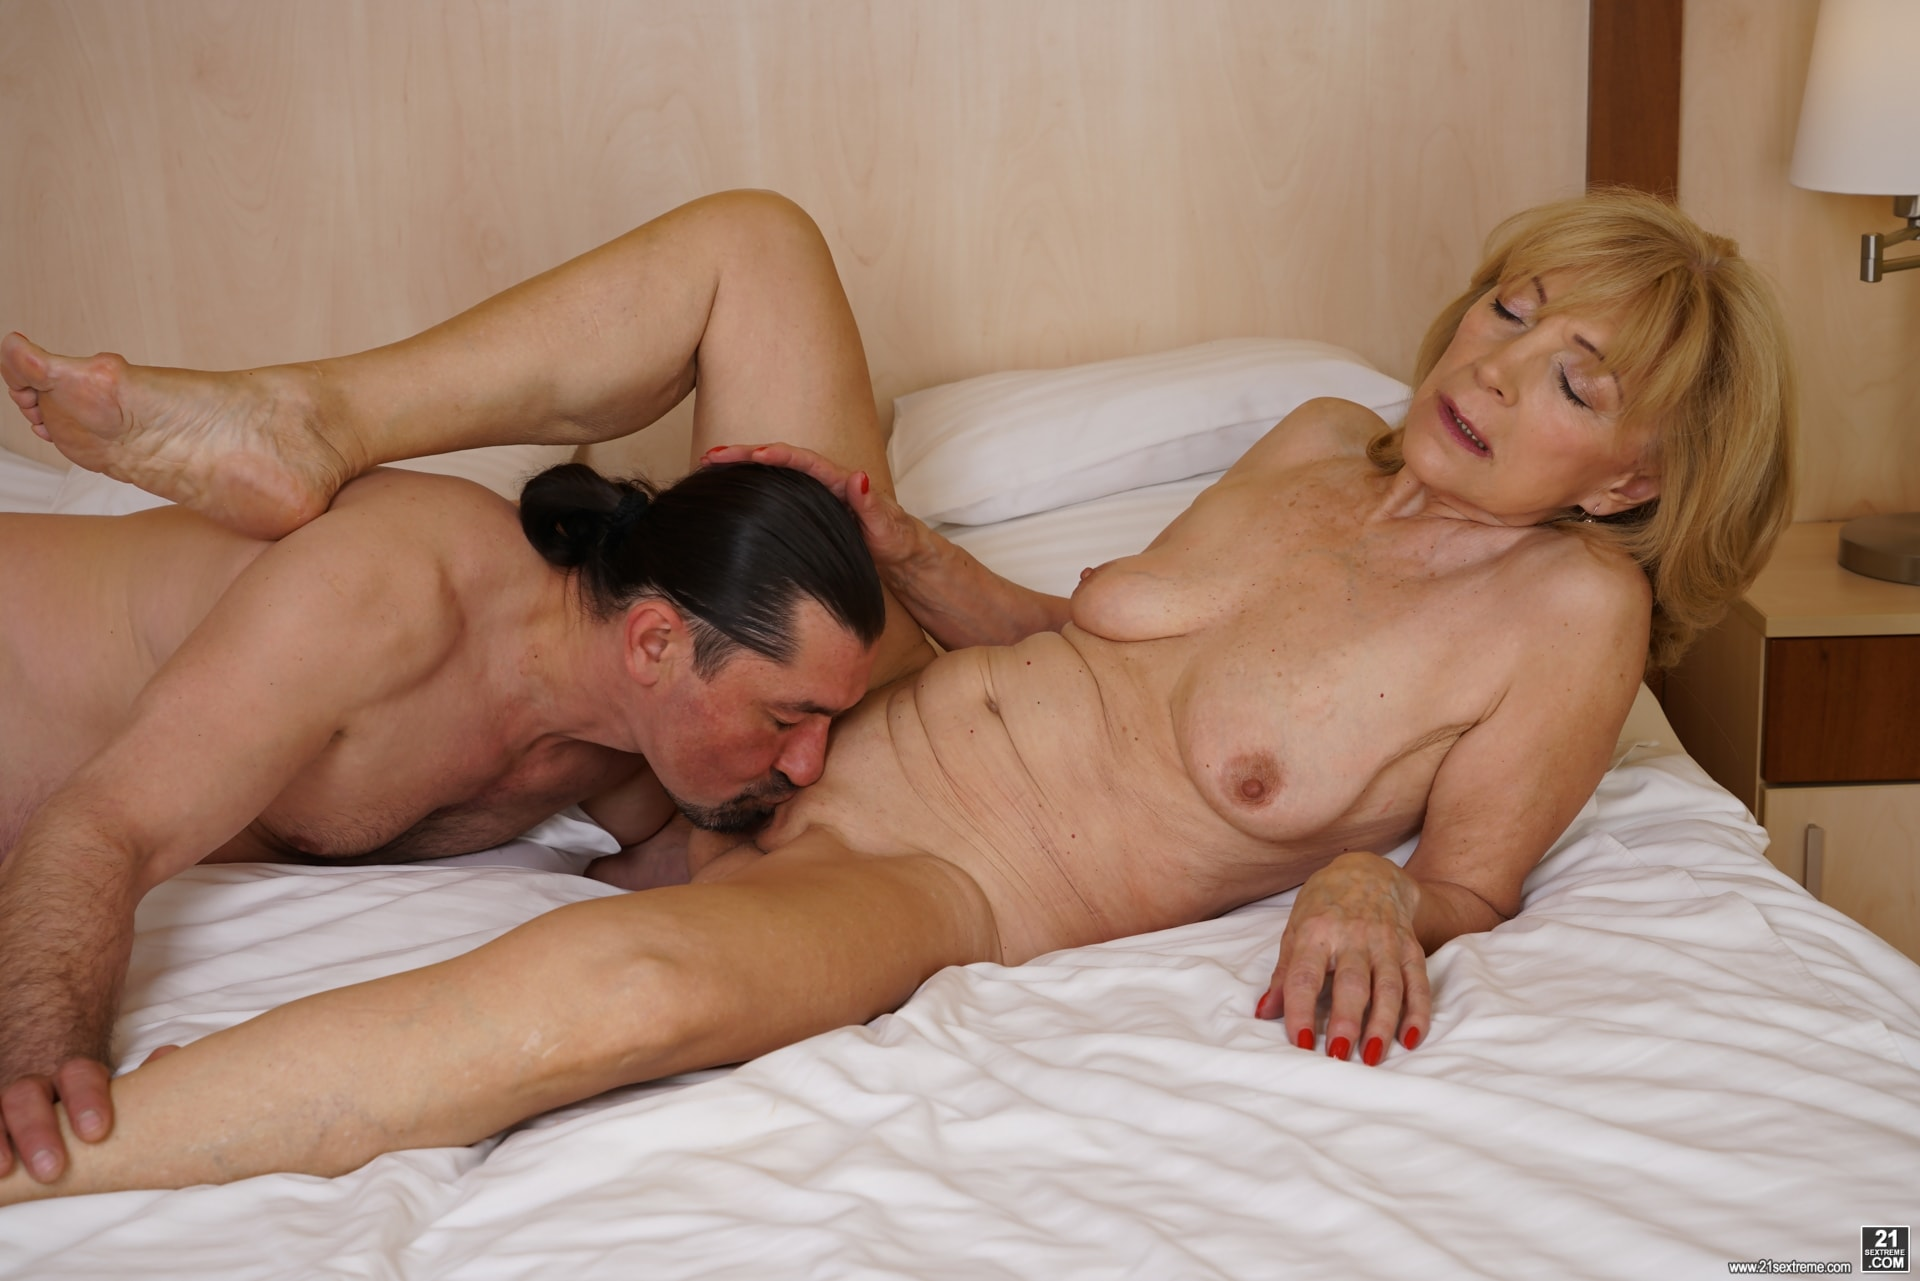 Frida sante cock hungry latina loves to suck and fuck 9